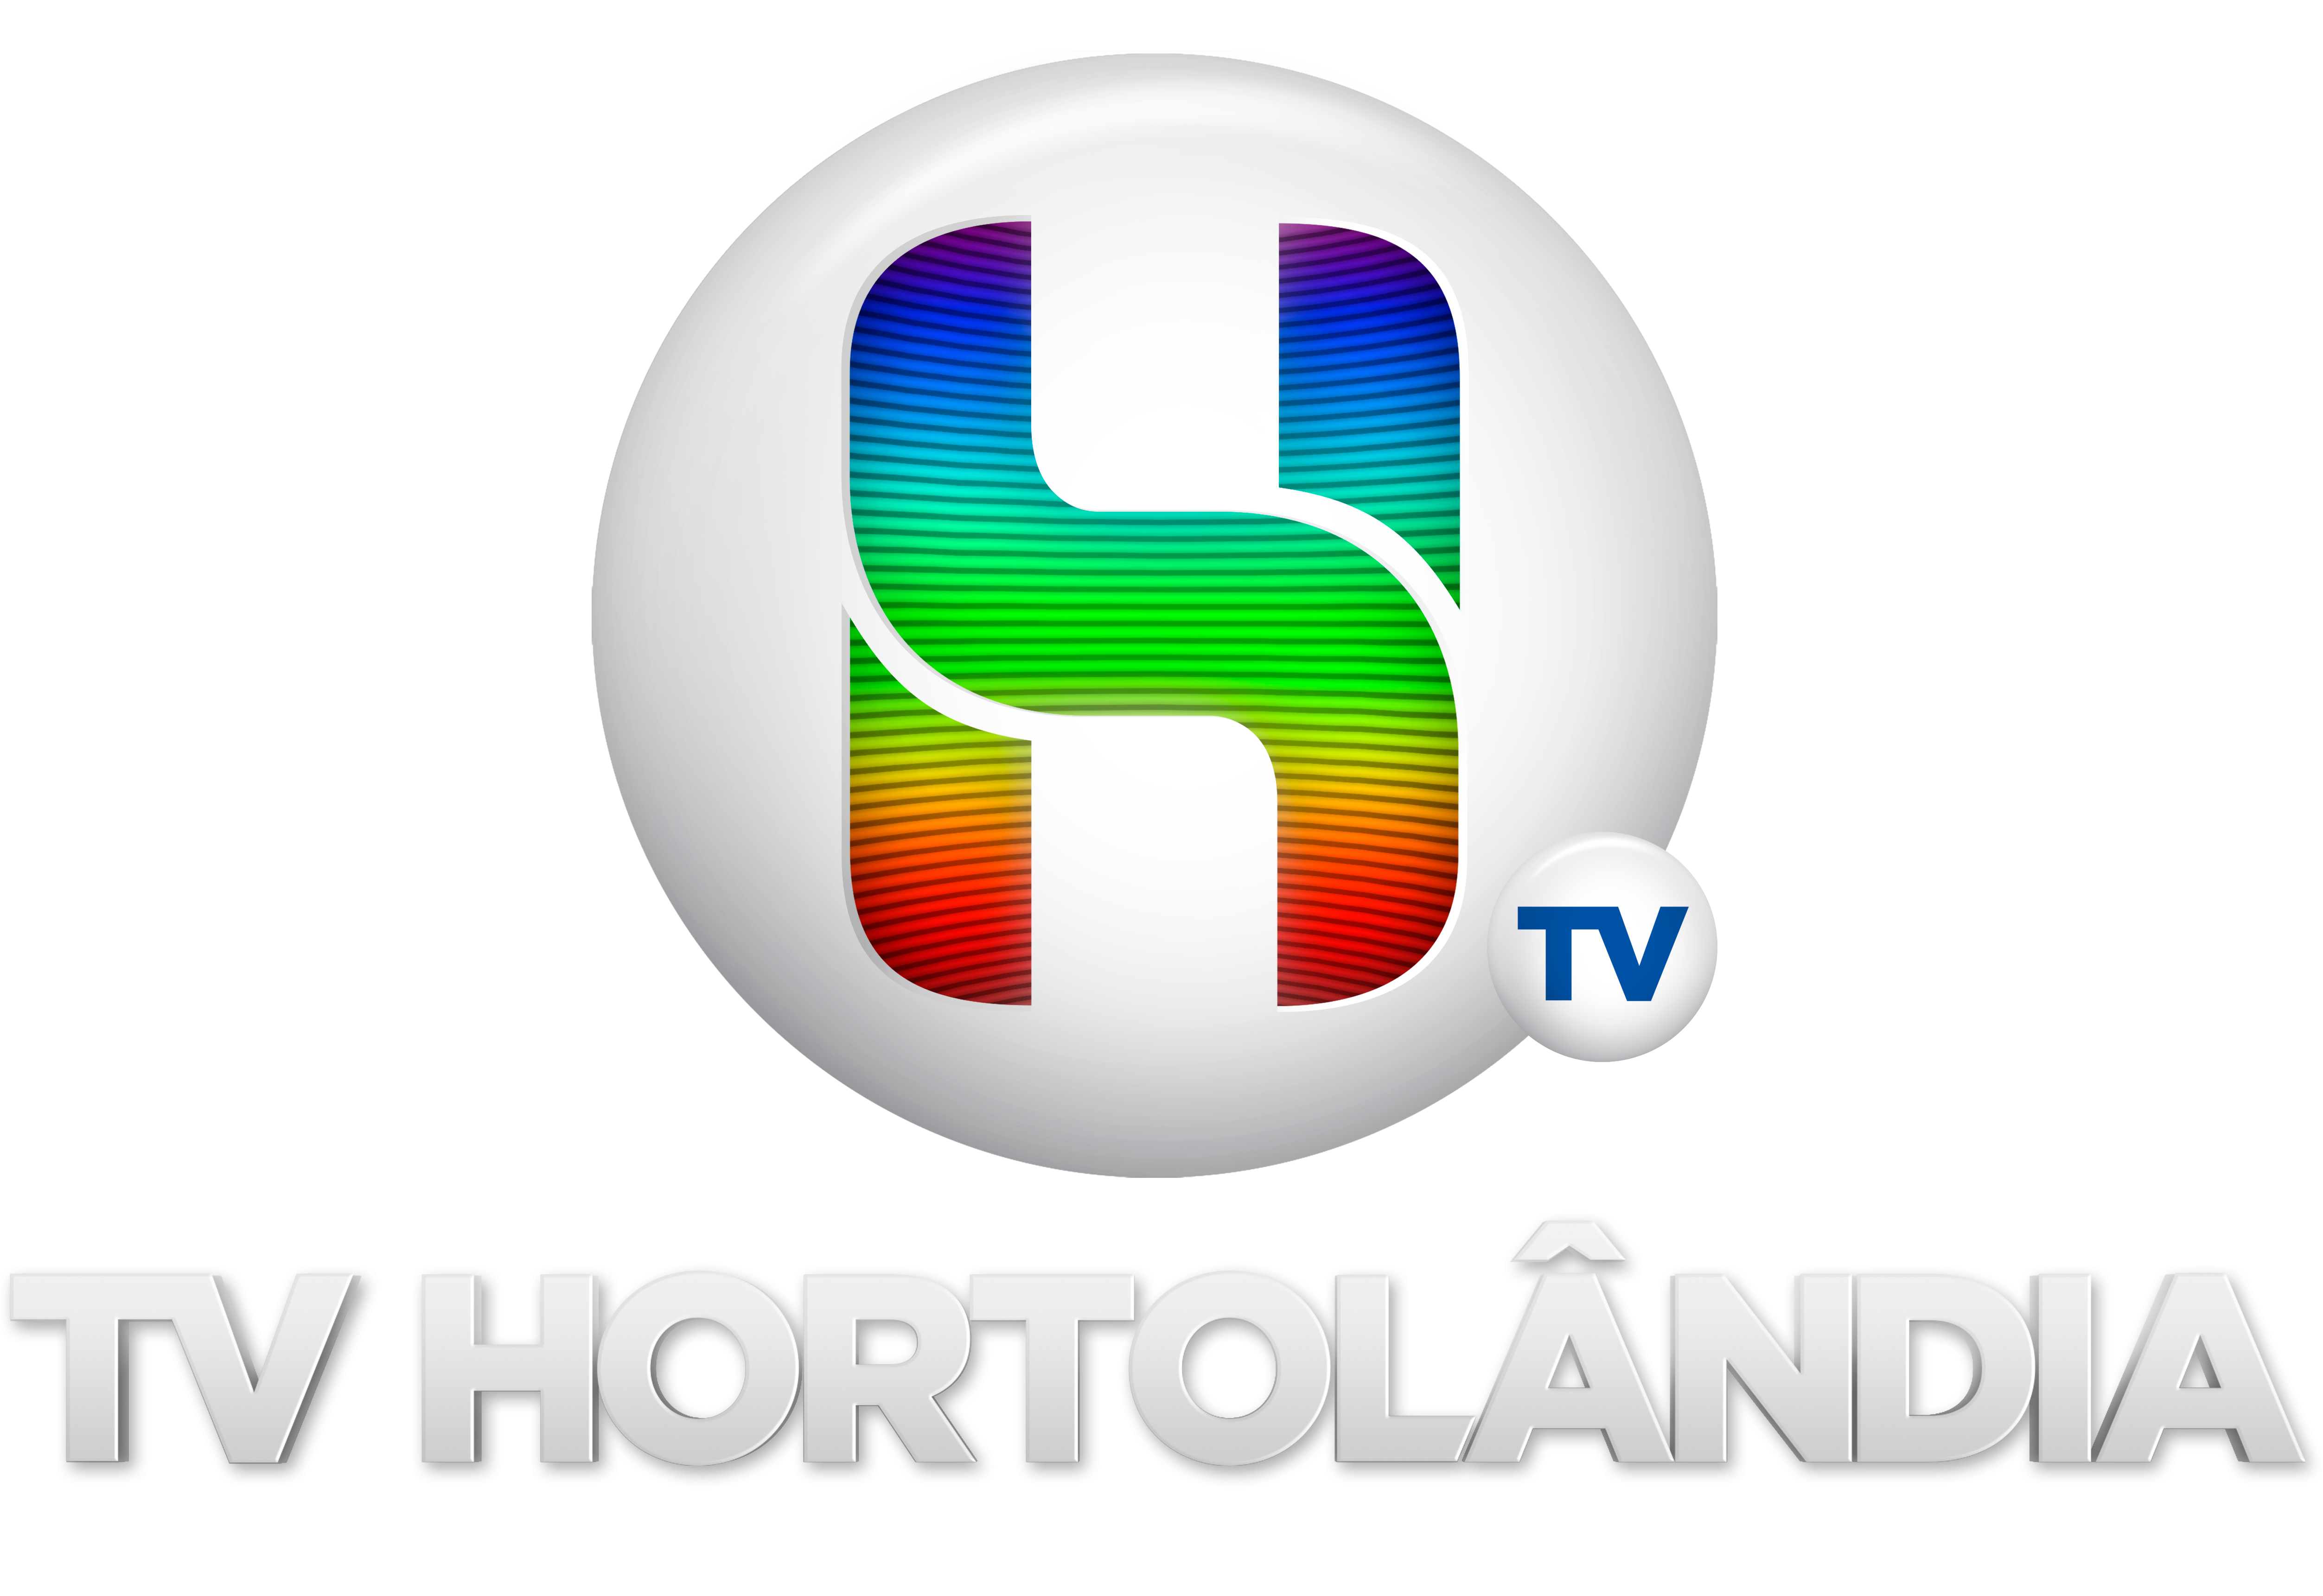 TV Hortolândia